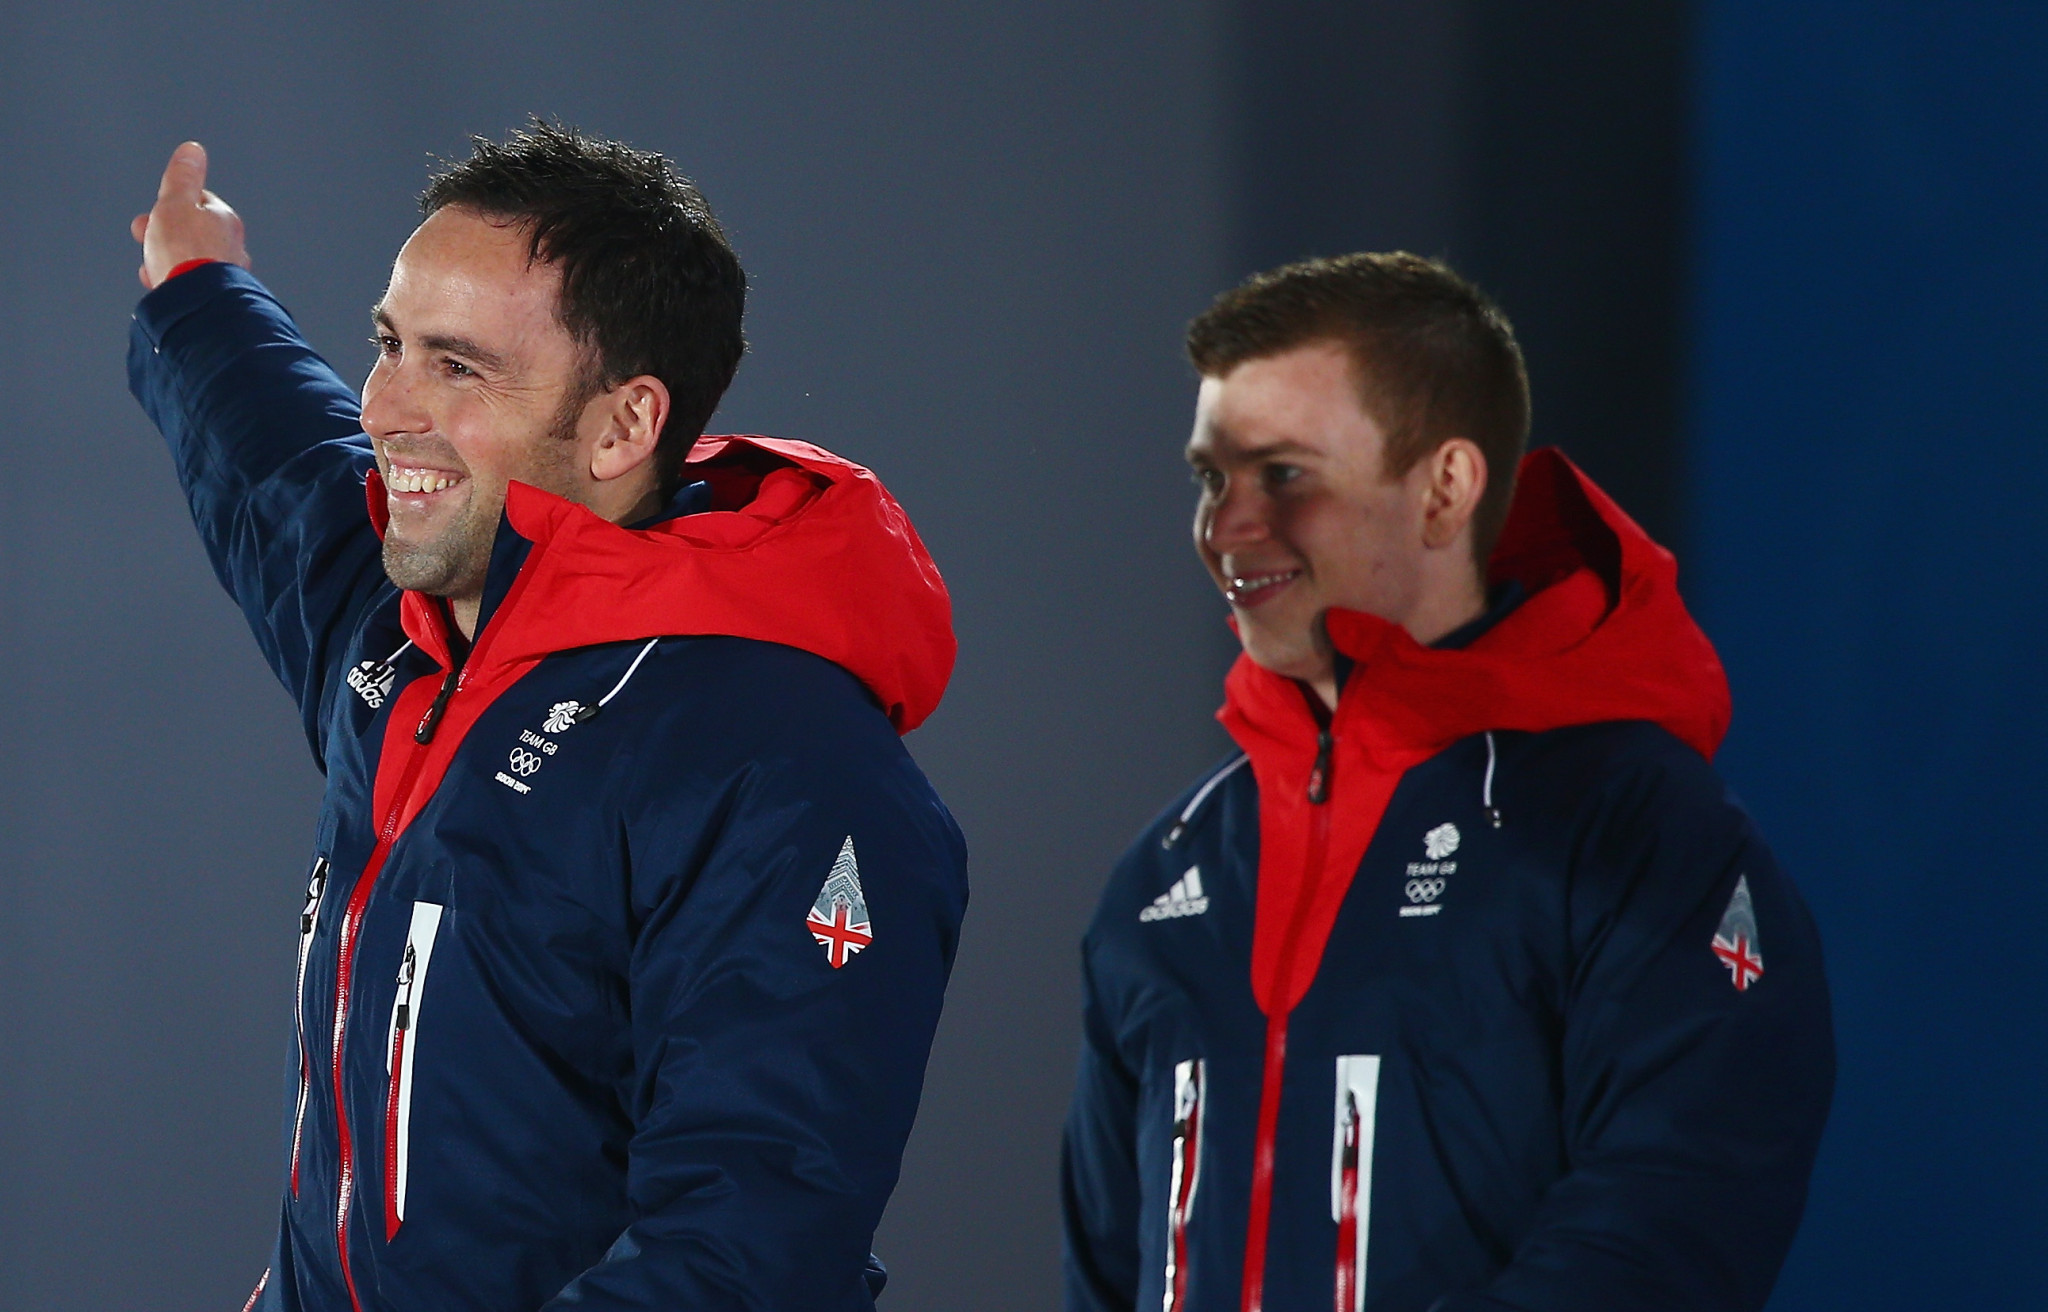 Olympic silver medallist Greg Drummond, right, is among those to join the coaching staff ©Getty Images